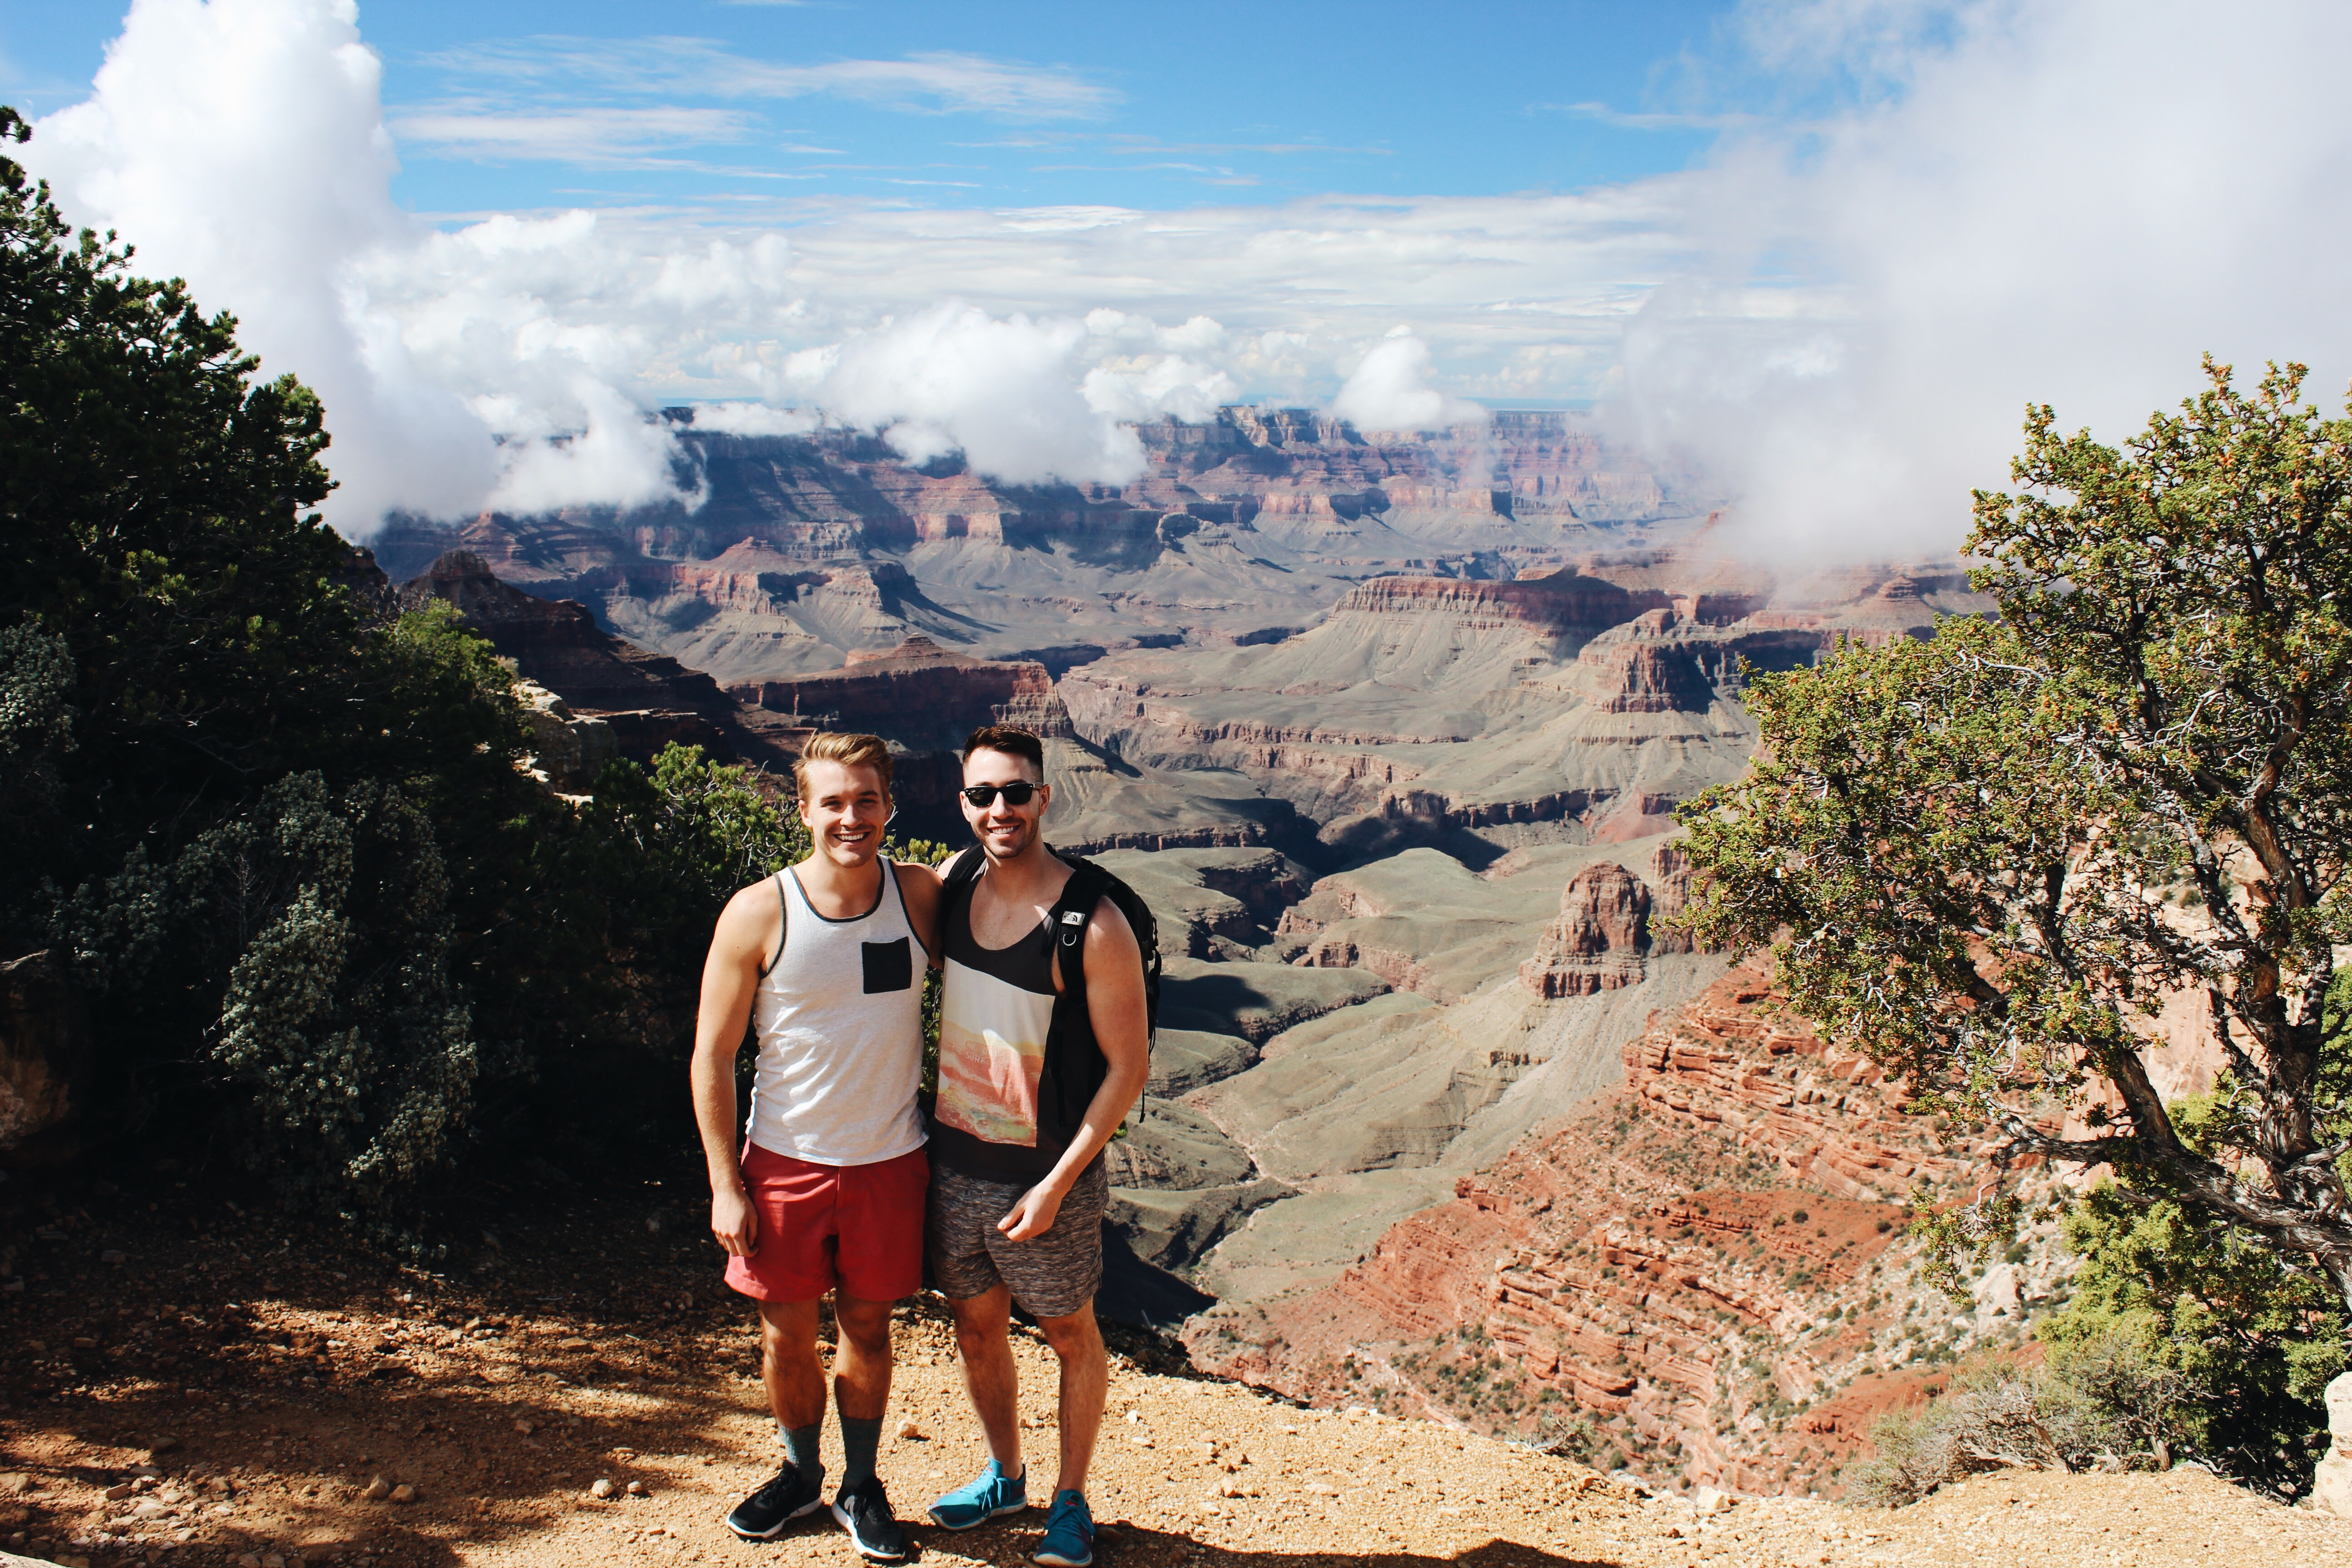 Andrew-Walker-Wanderlust-Couple-who-love-to-hike-and-outdoor-activity-by-The-Gay-Passport